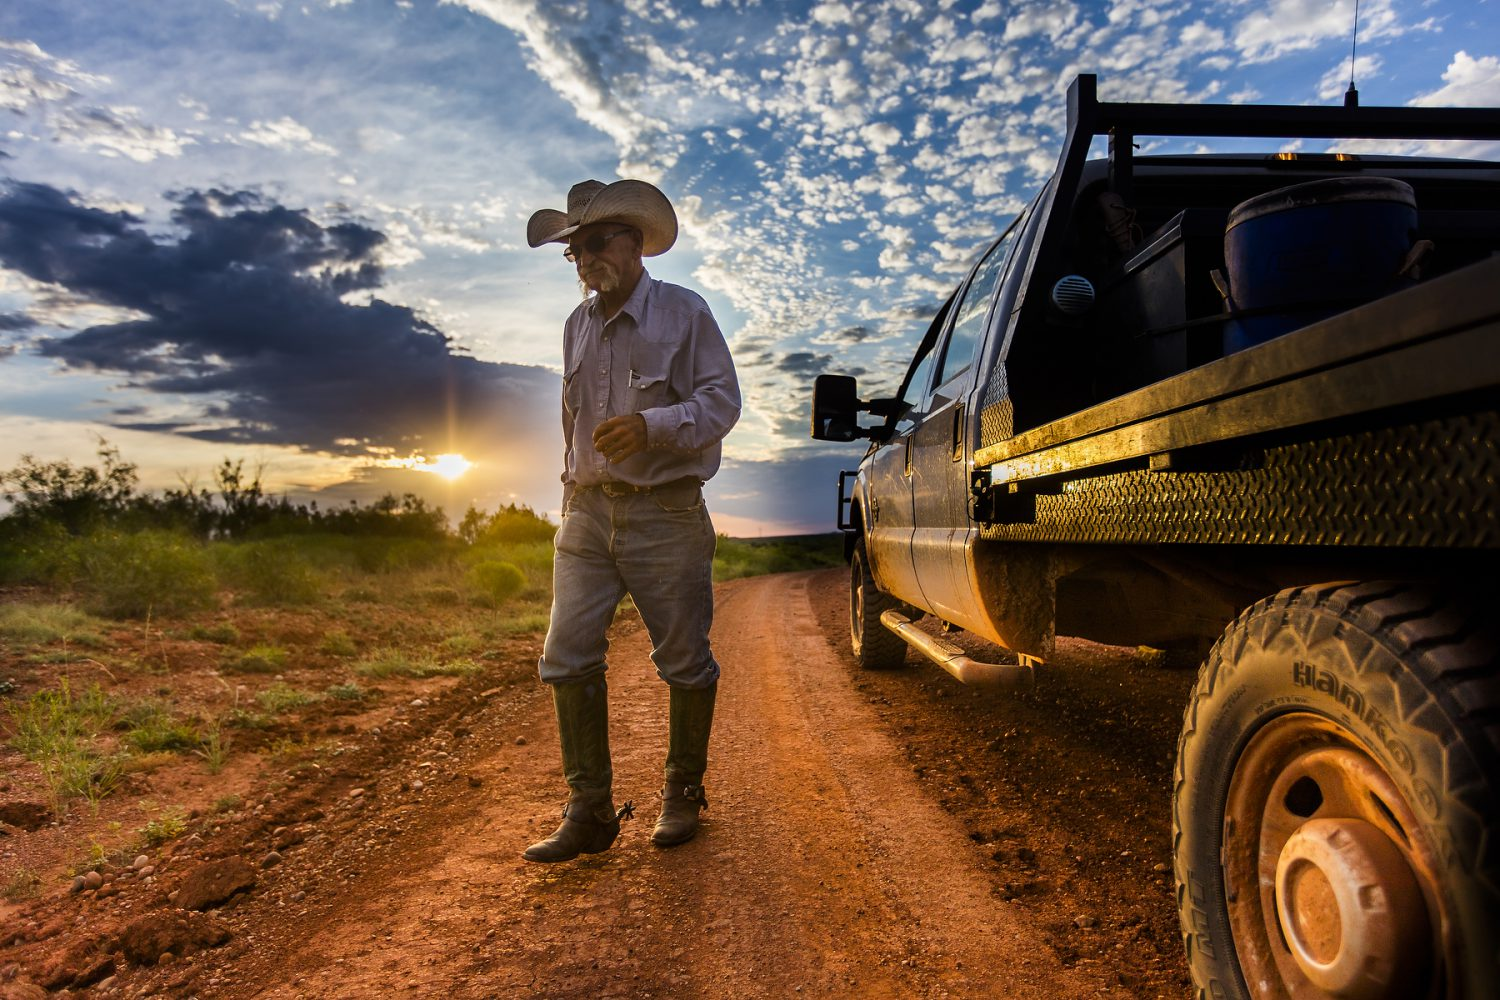 New portrait of Jimbo Glover from the Waggoner Ranch